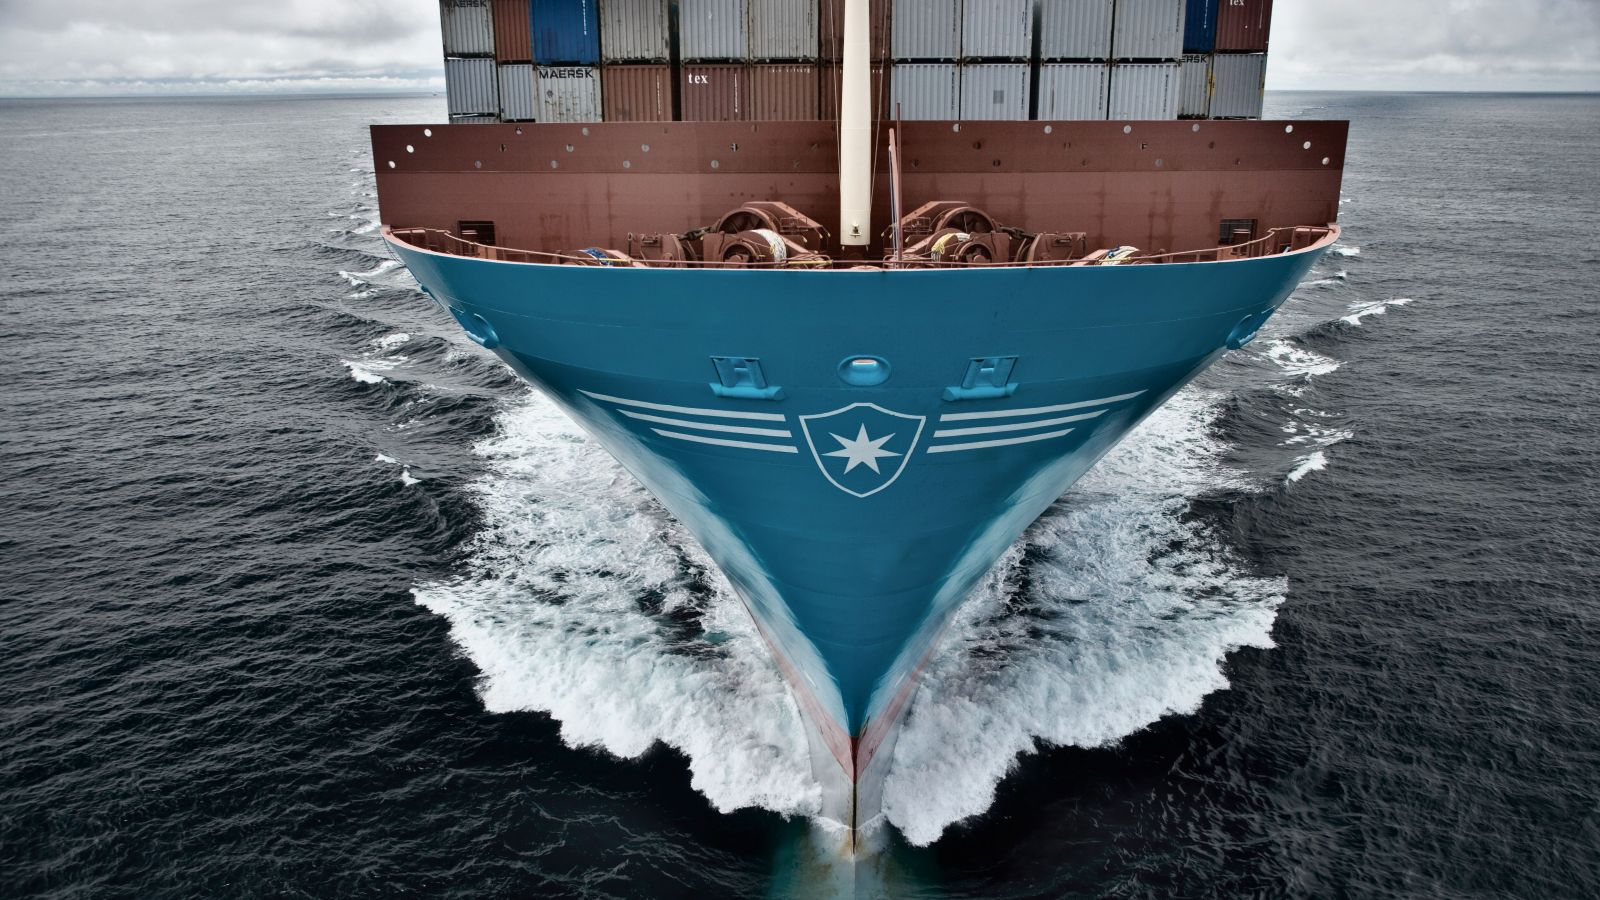 Maersk Line to pay US$4b for smaller rival